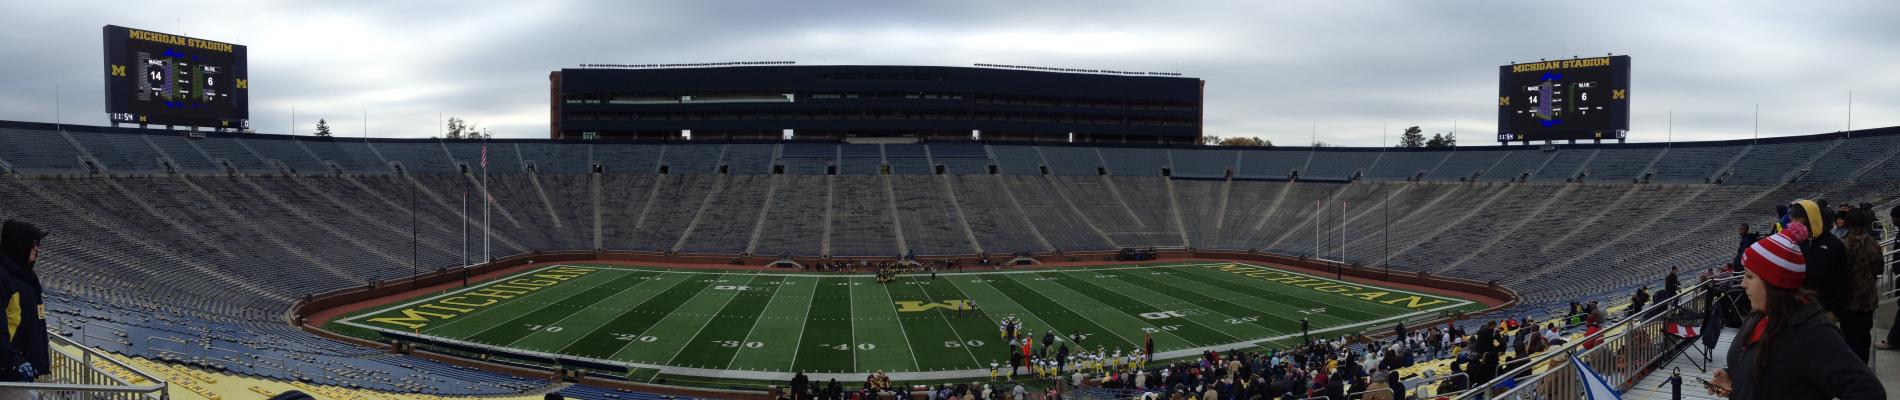 Ann Arbor Adventure: Welcome to the Big House